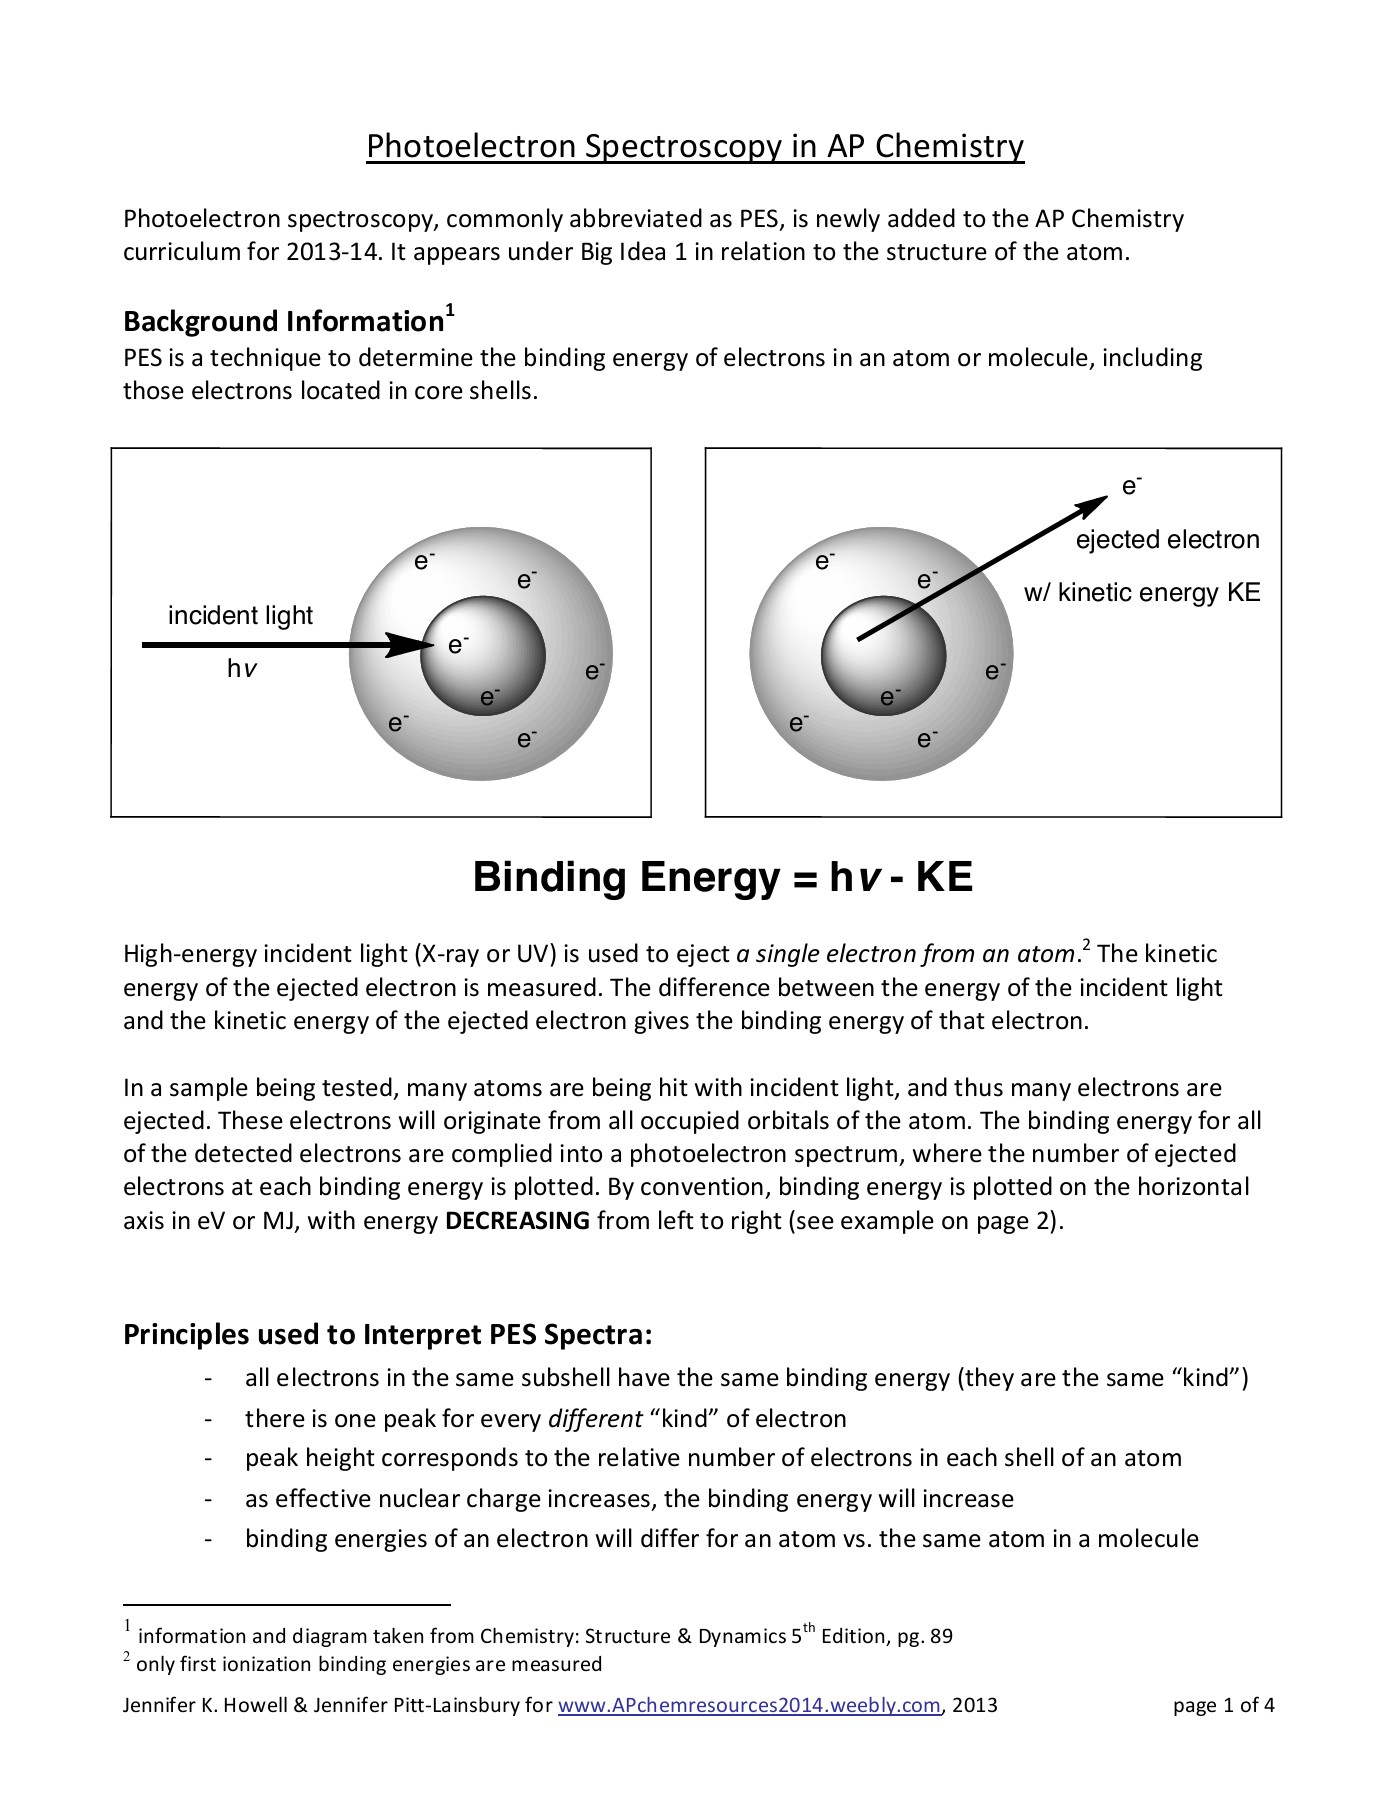 Binding Energy = hv - KE - Weebly Pages 1 - 4 - Text Version